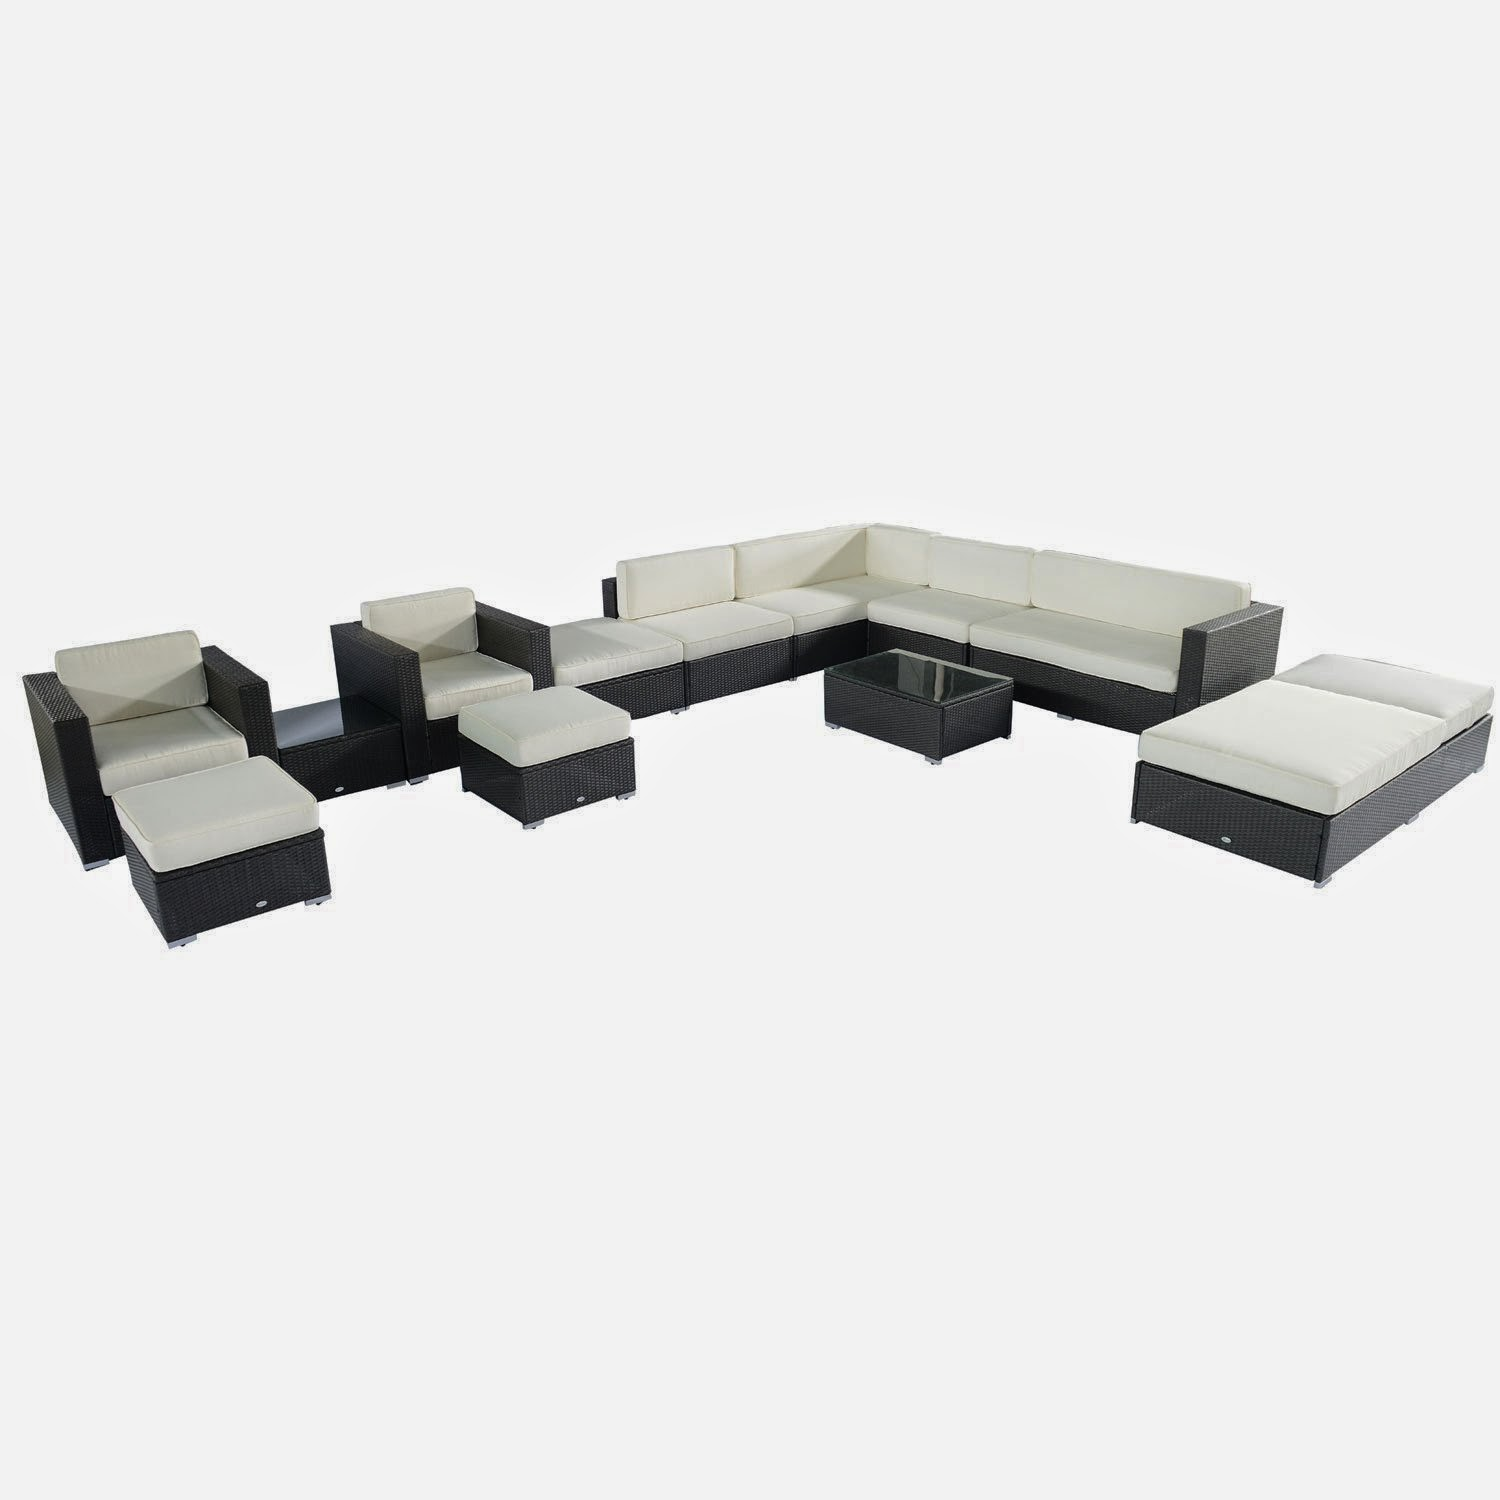 Outsunny Outdoor Rattan Sectional Furniture